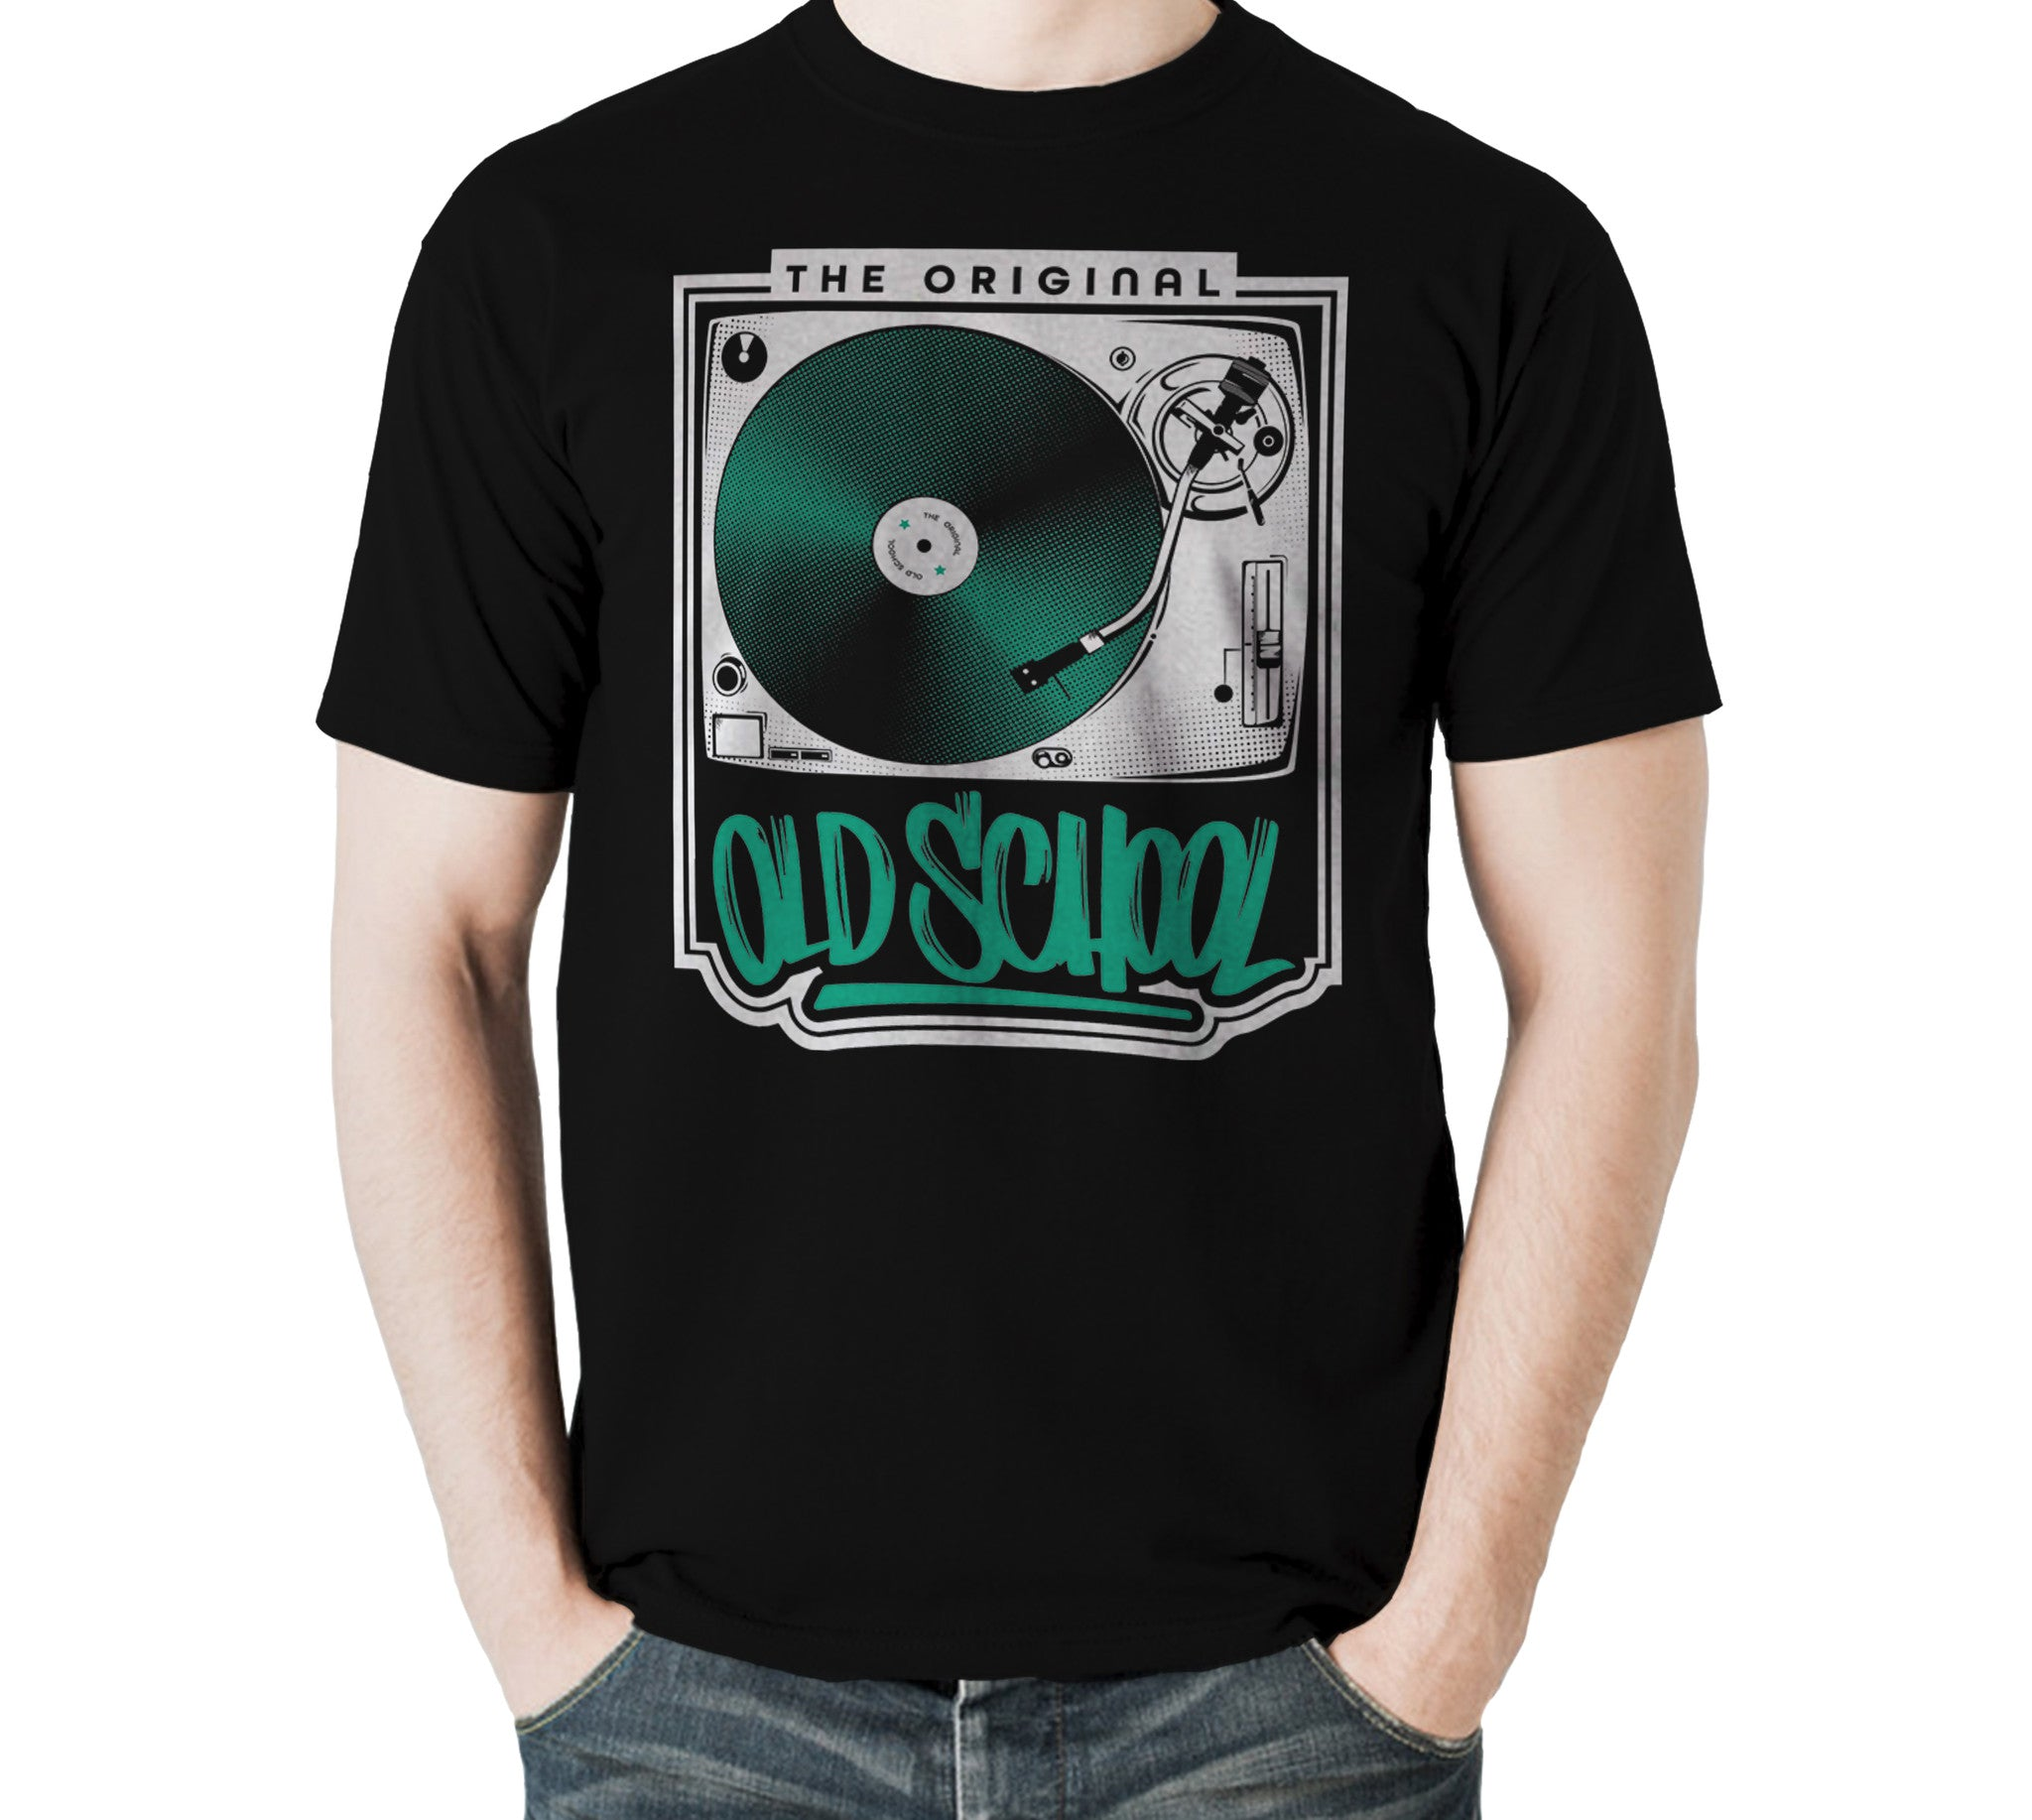 The Original Old School T-shirt - Vinyl Clothing Co - DJ Apparel Clothing Disc Jockey Vinyl Gear